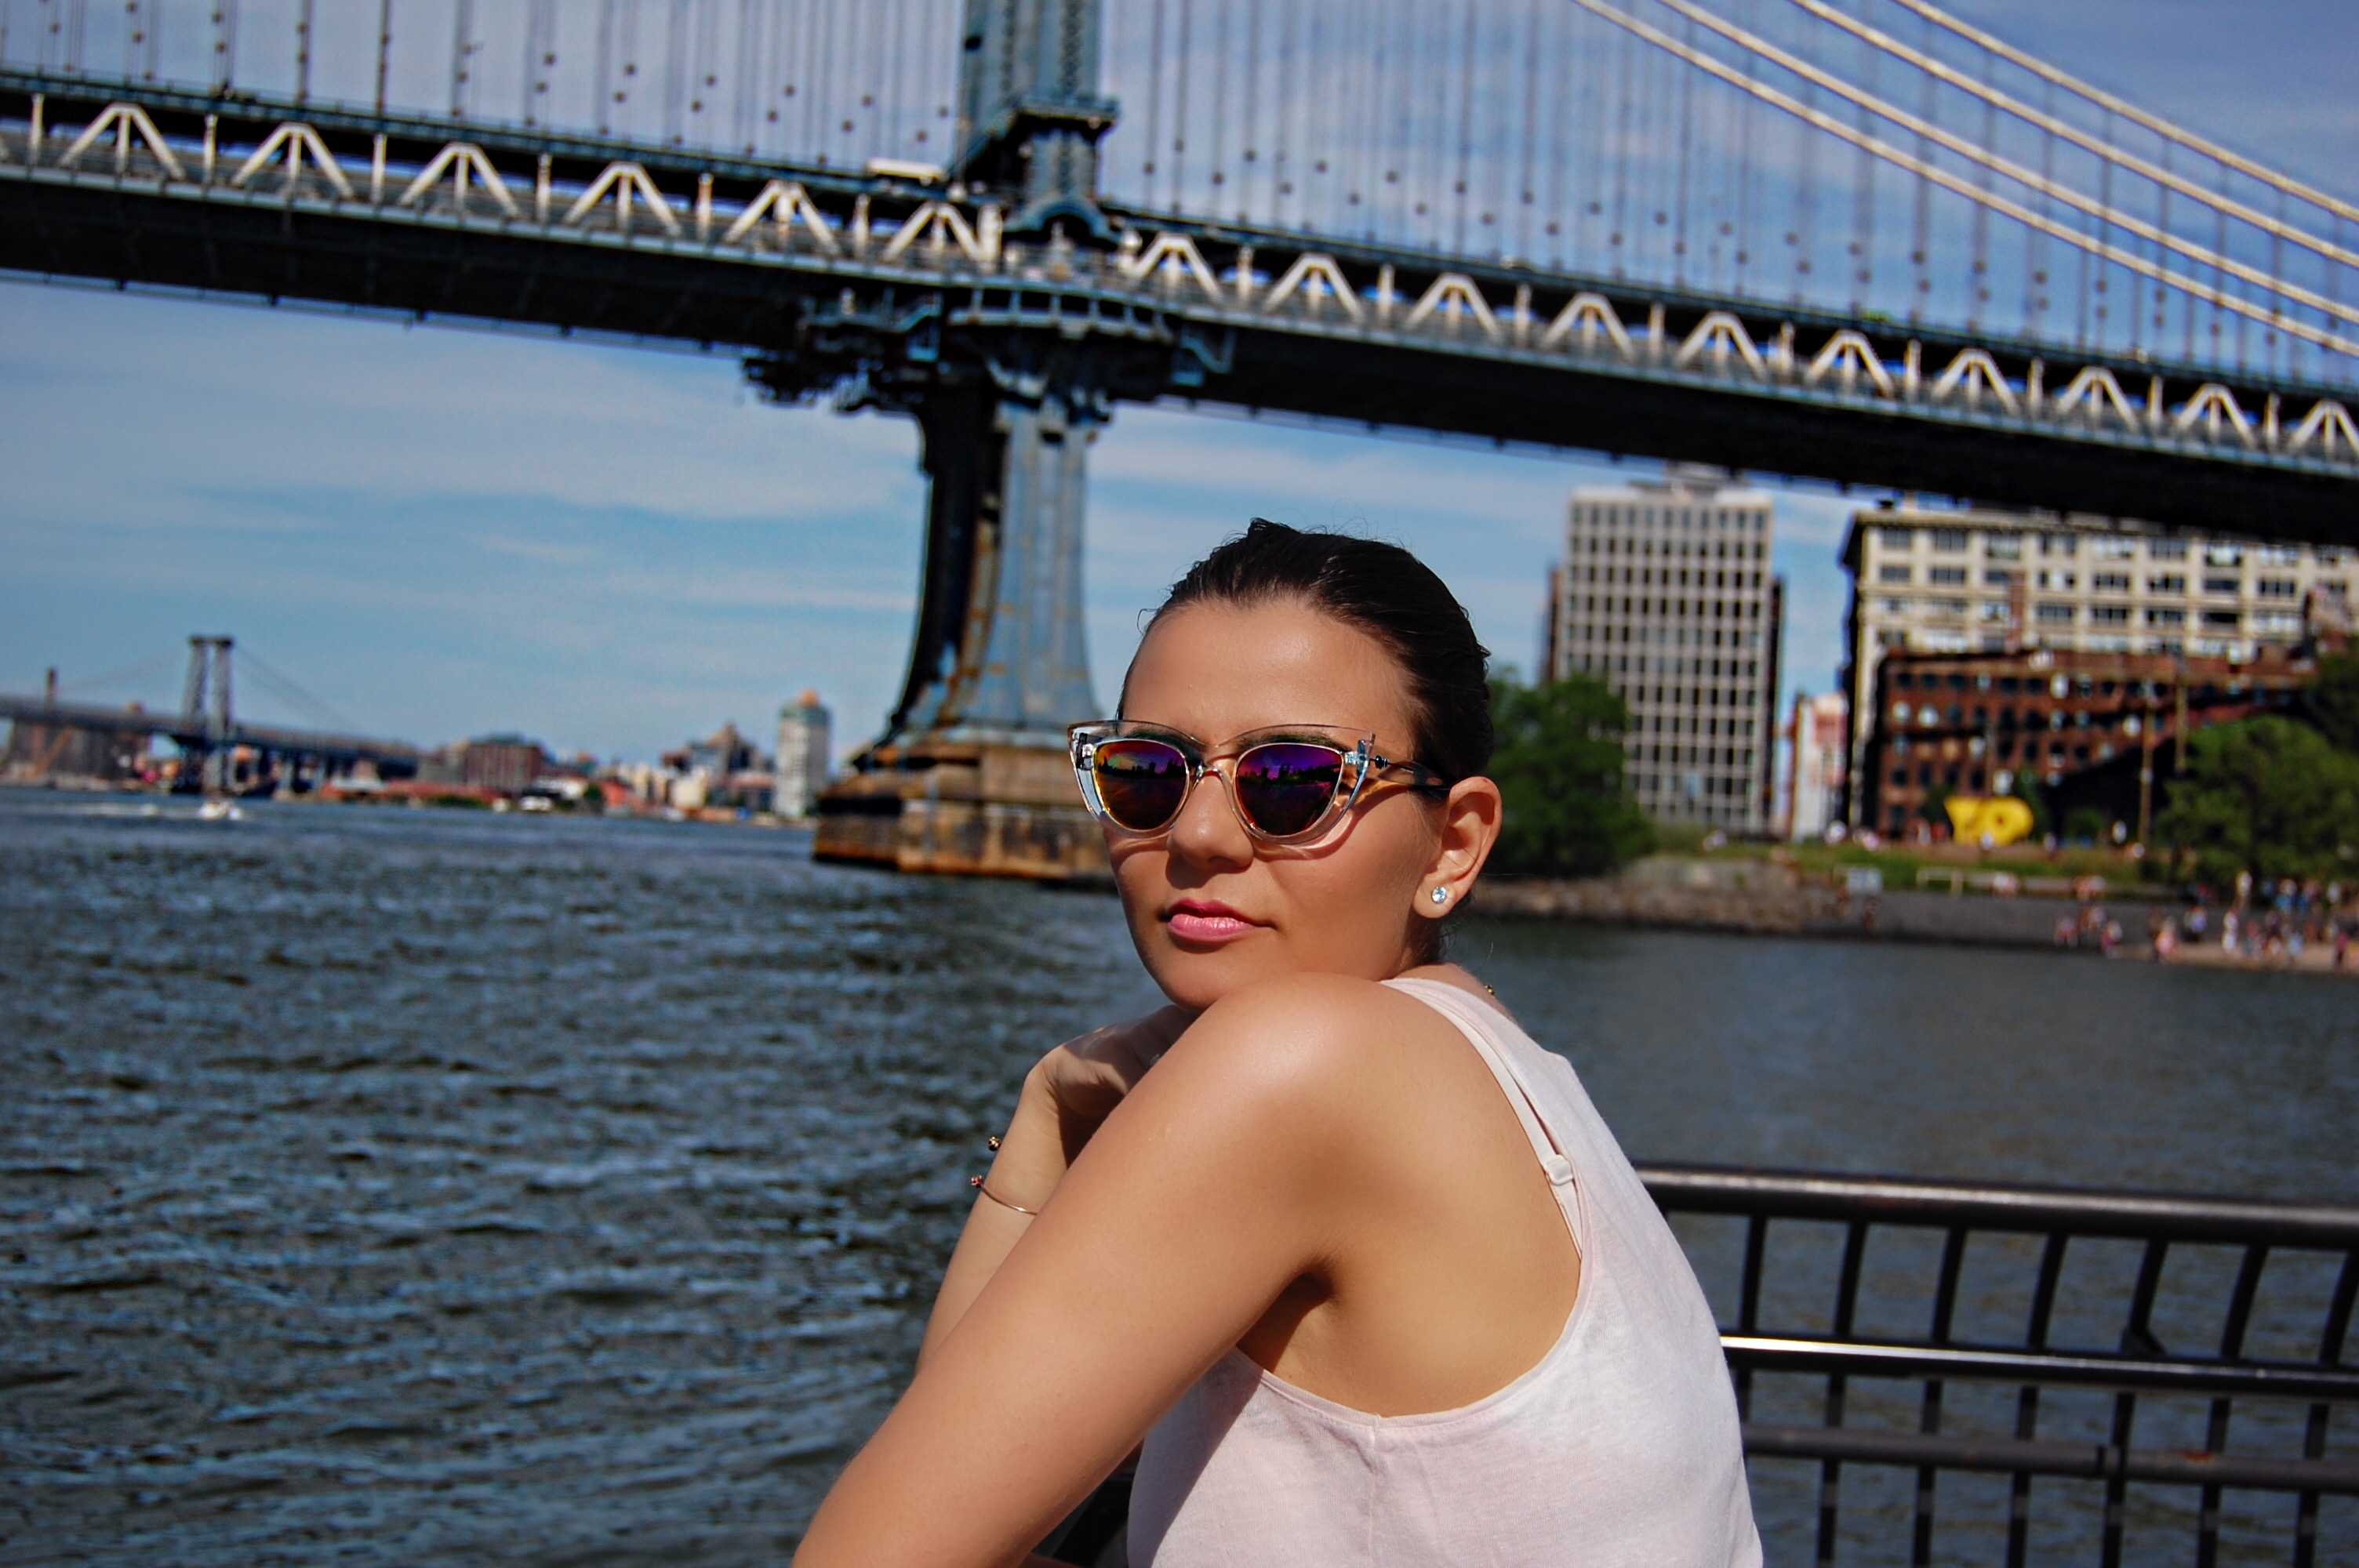 new_york_guide_brooklyn_dumbo_alley_girl7